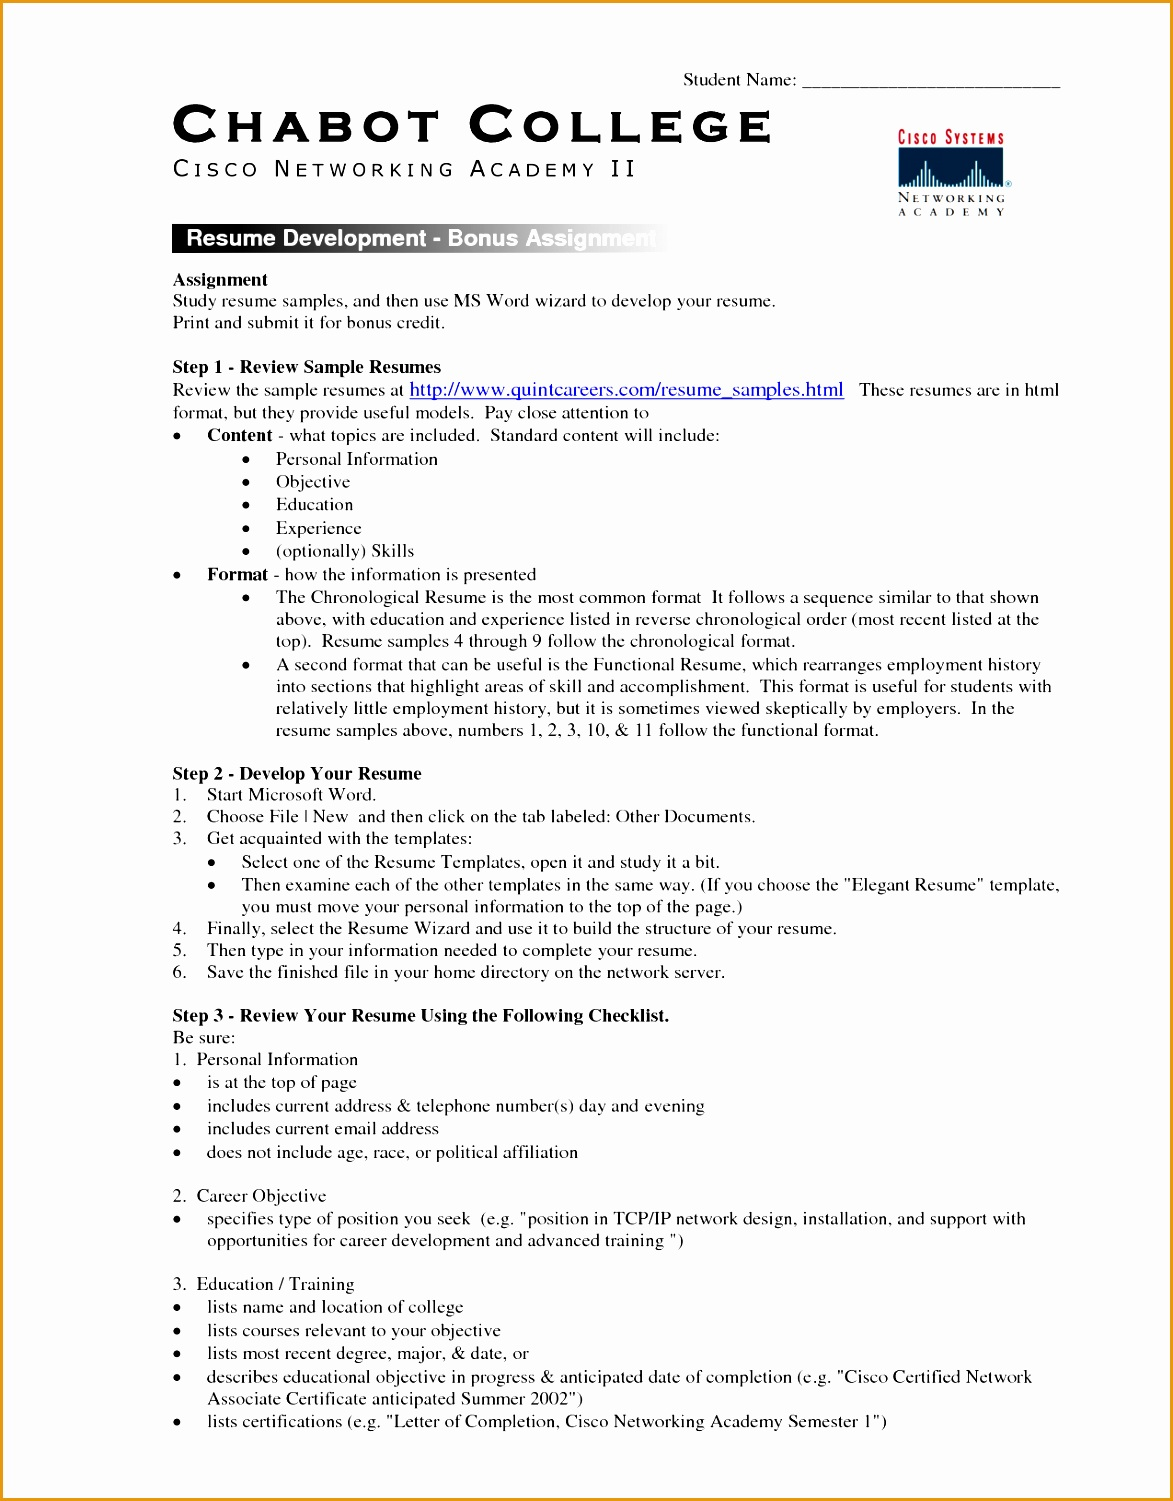 College Resume Template Microsoft Word 8 College Resume Templates Free Samples Examples